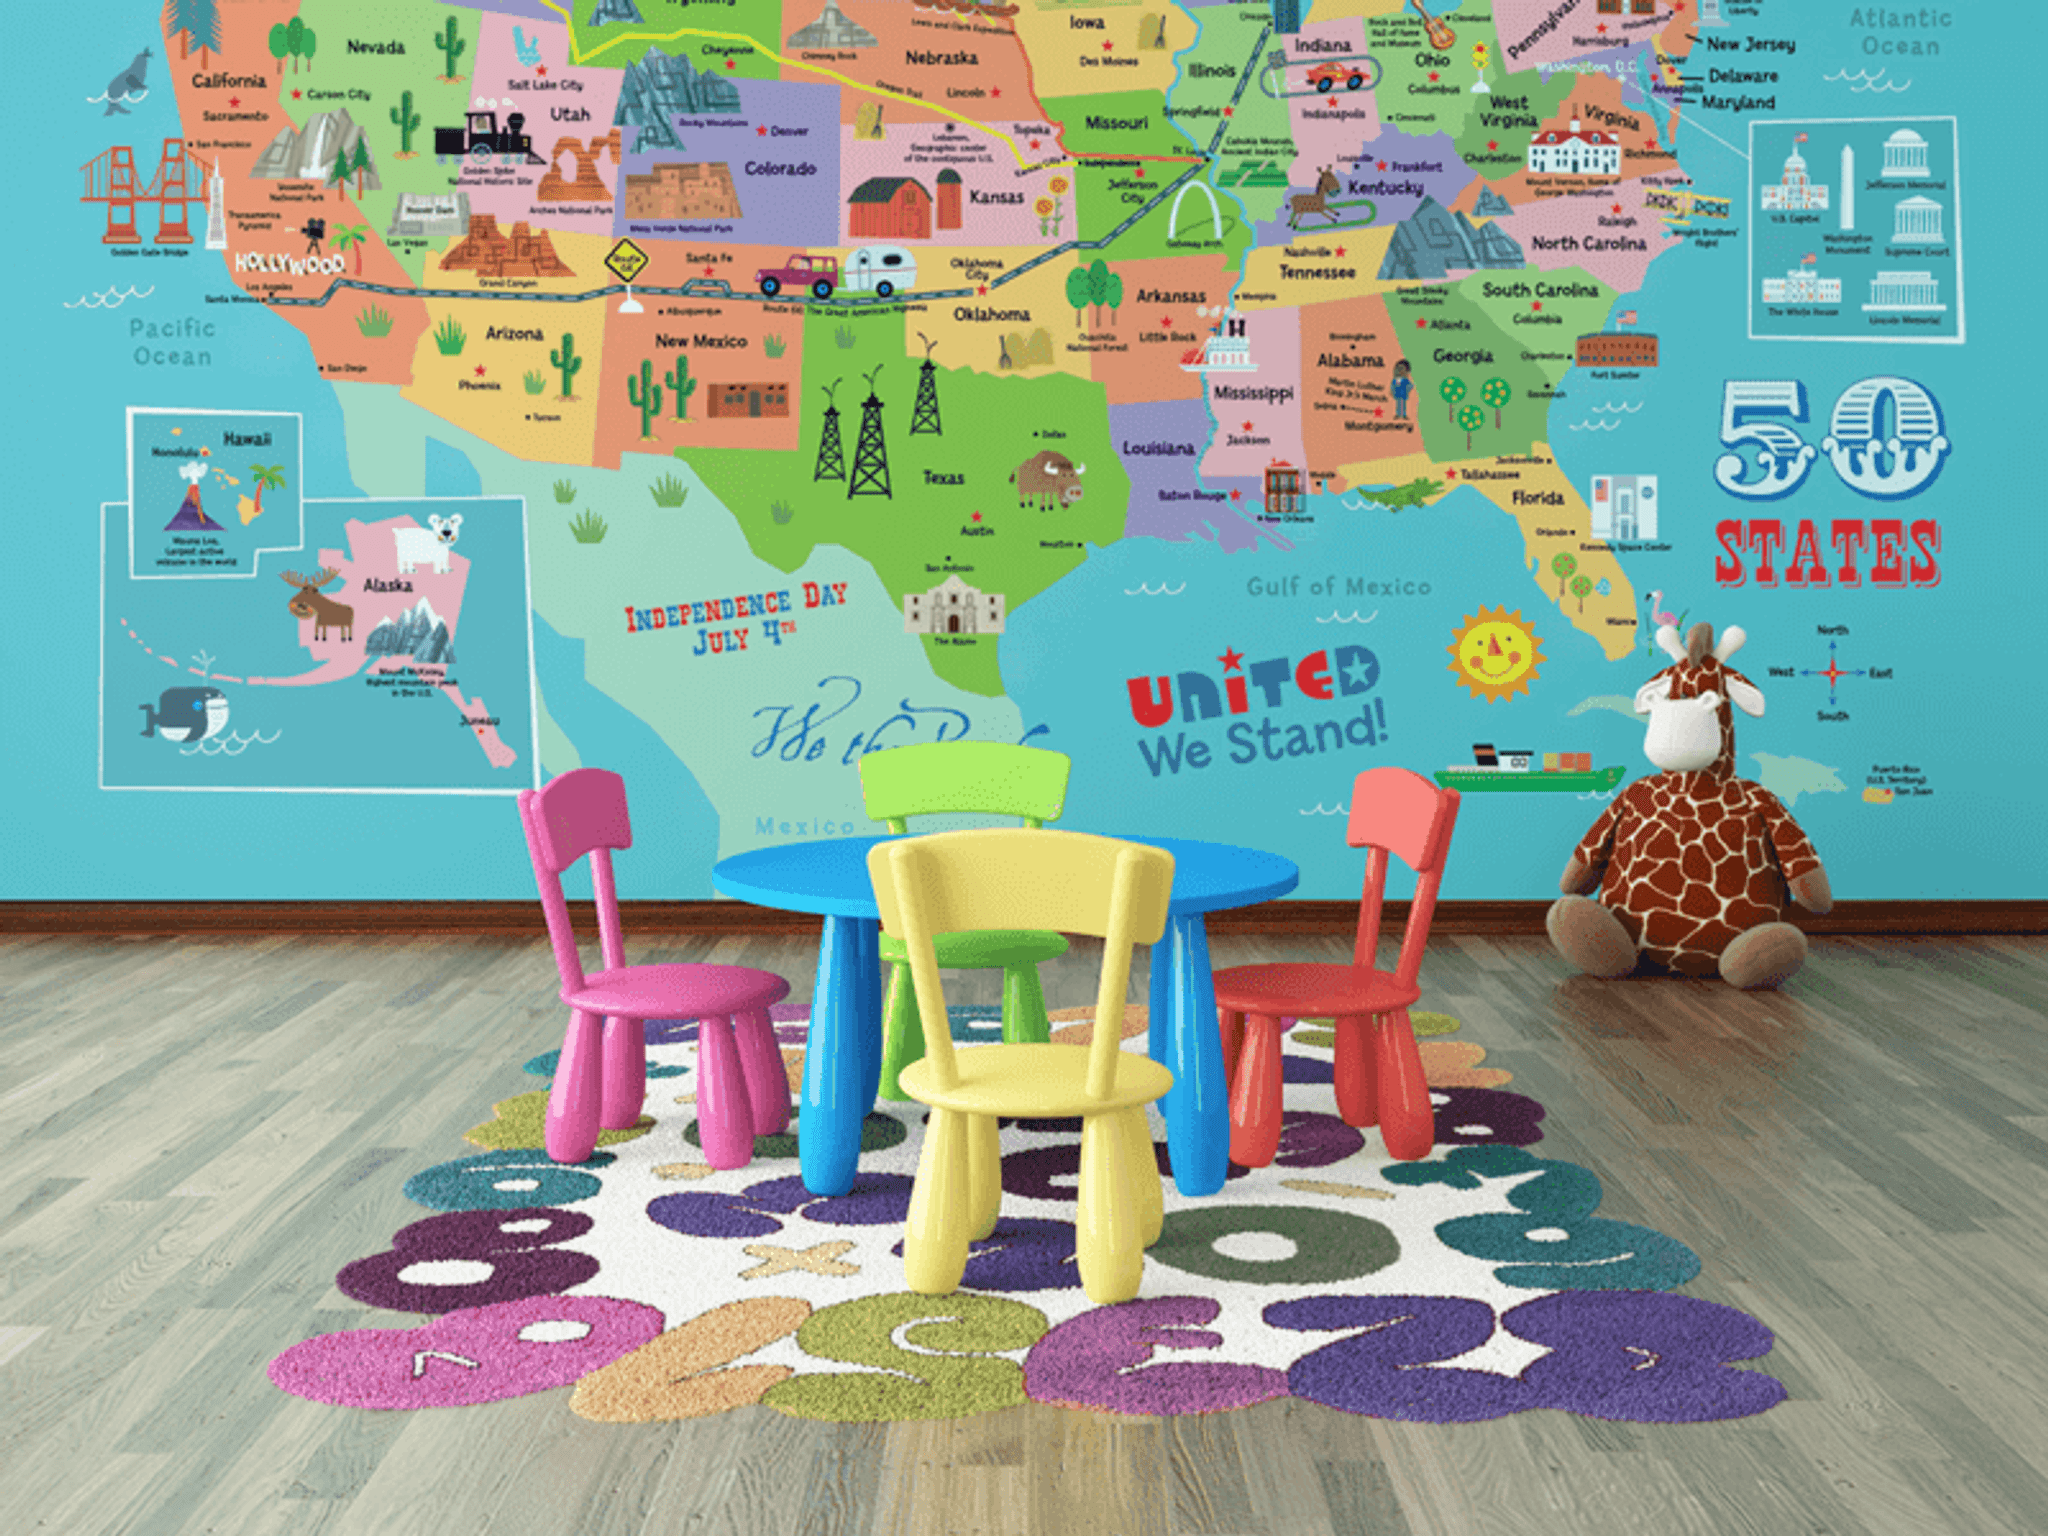 Kids' USA Map Illustrated Wall Mural - Rand McNally Store on large map of usa, roadmap of the usa, map of usa states, physical map of usa, postcard of the usa, parts of the usa, rivers of the usa, full map of usa, climate of the usa, united states maps usa, travel the usa, mal of the usa, map of time zones in usa, driving road map usa, flag of the usa, blank map of usa, states of the usa, outline of the usa, map of east coast usa, atlas of the usa,